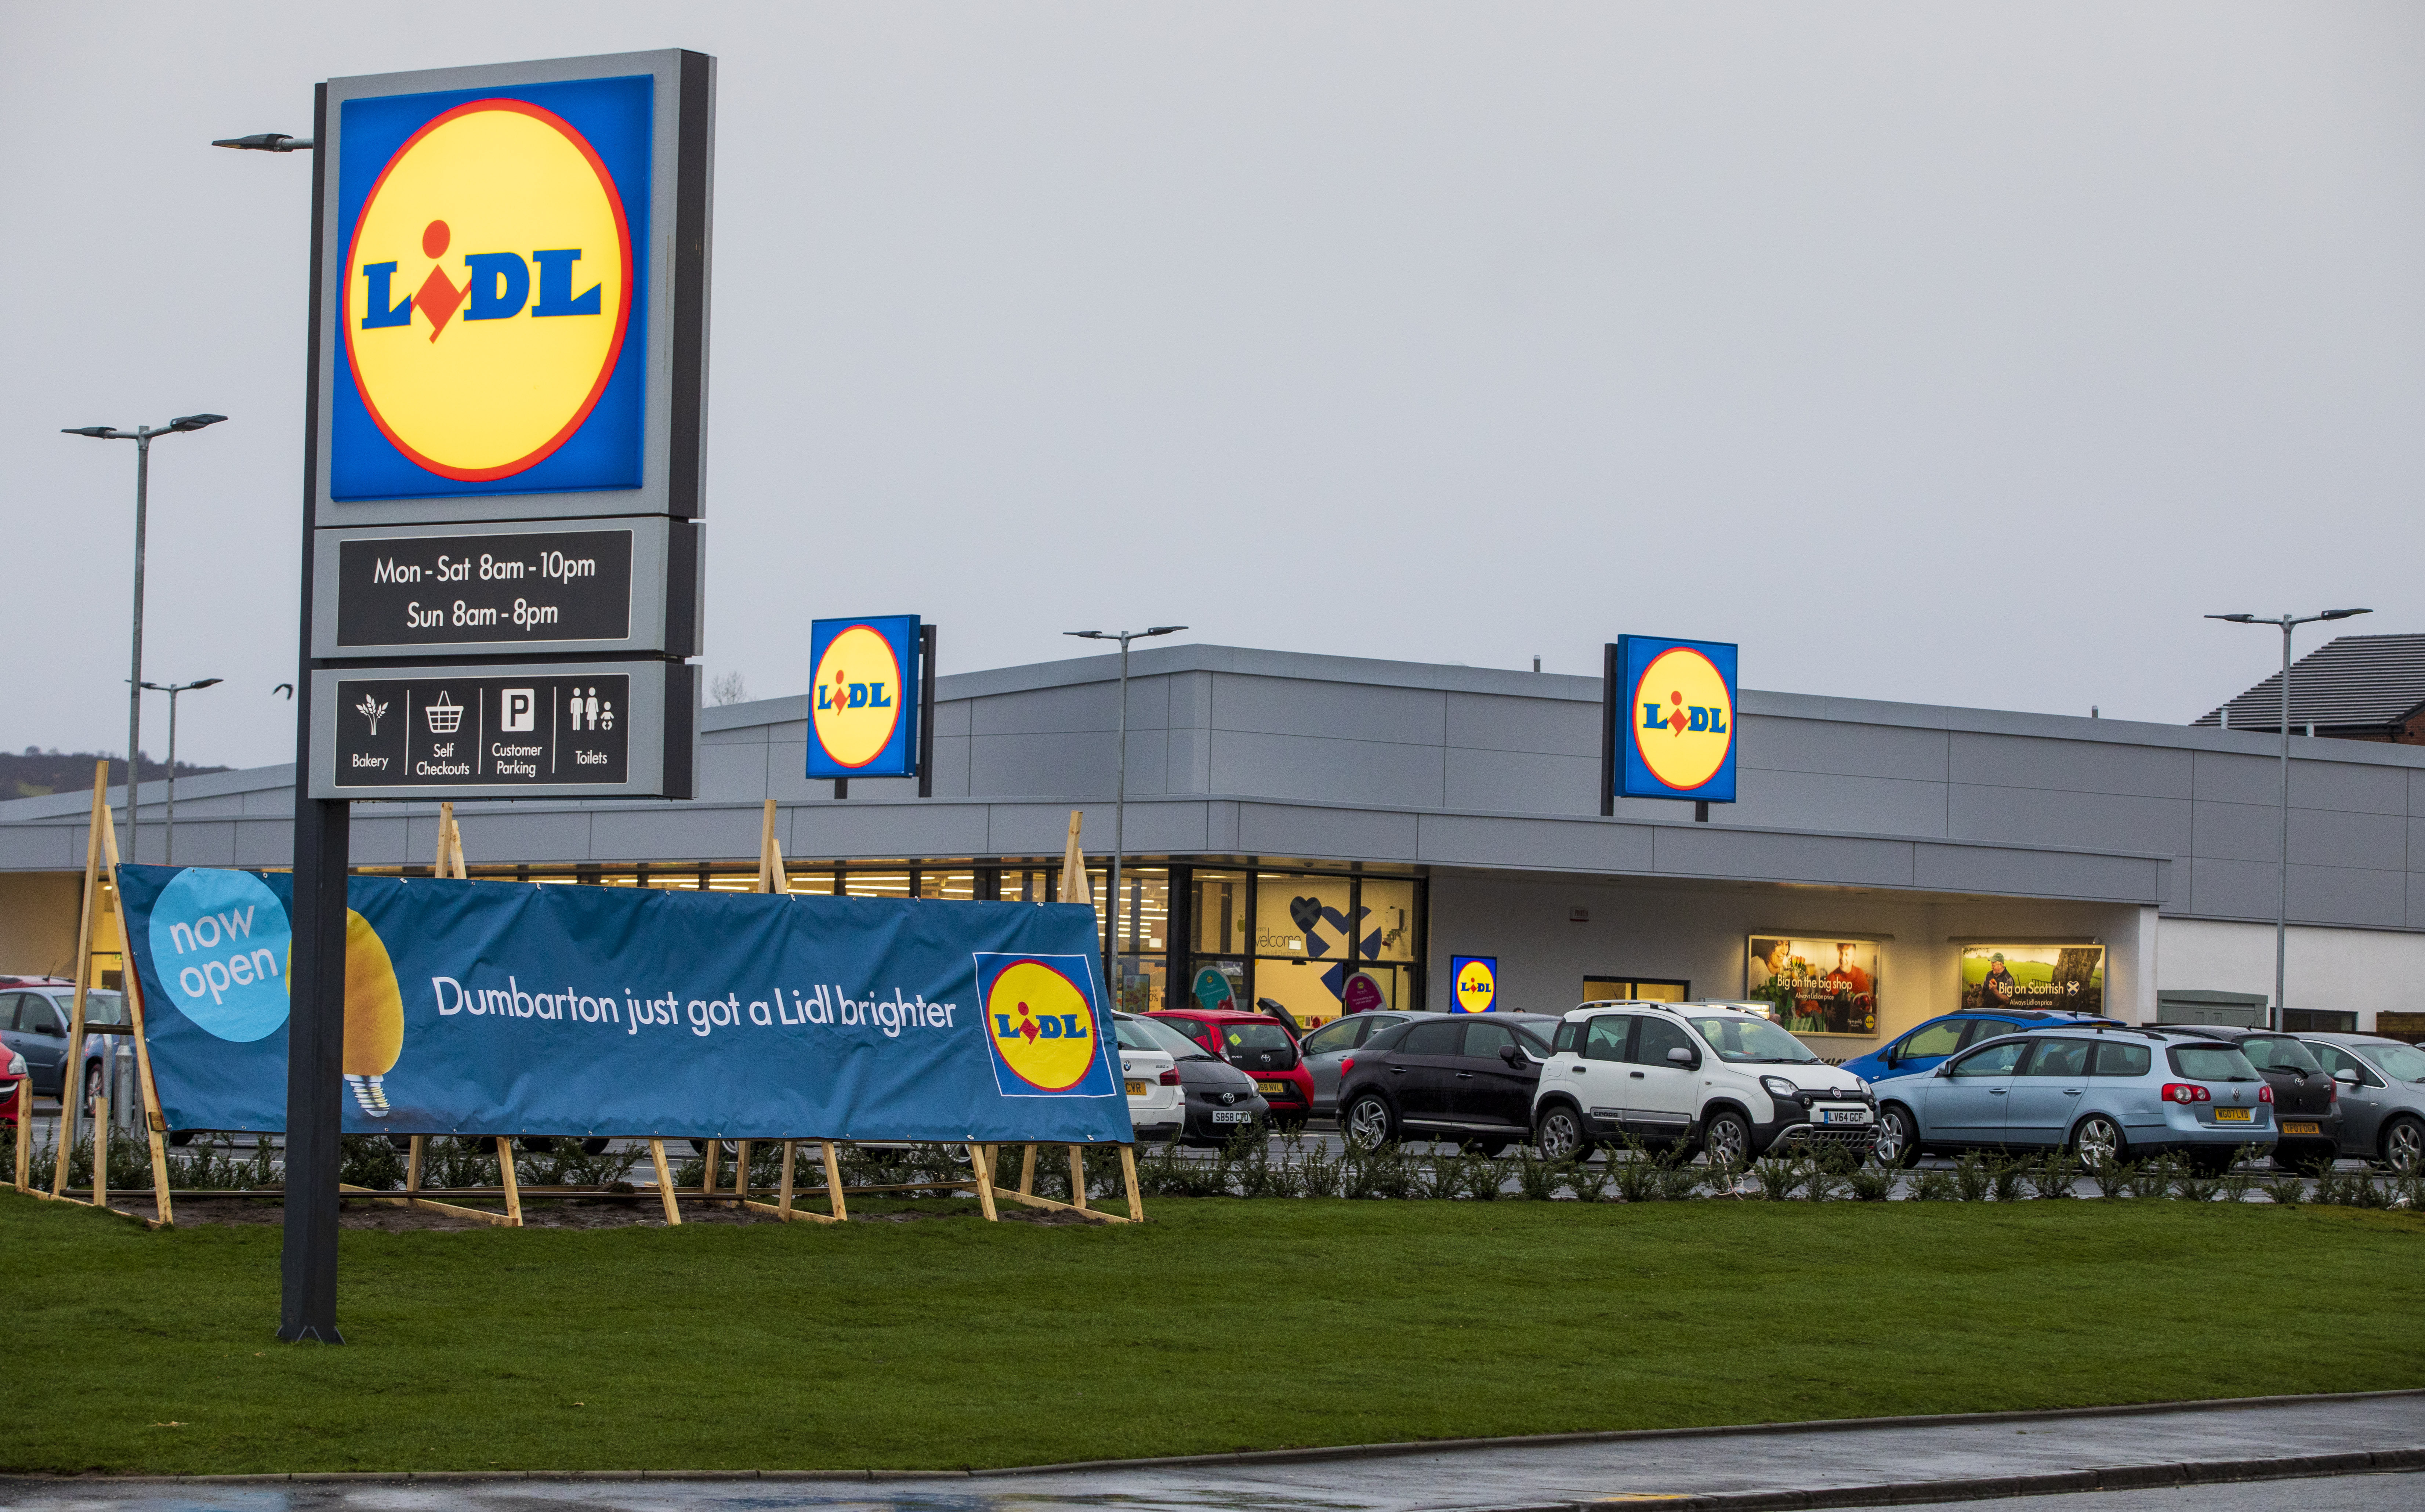 LIDL OPENS NEW STORE IN CASTLE STREET, DUMBARTON